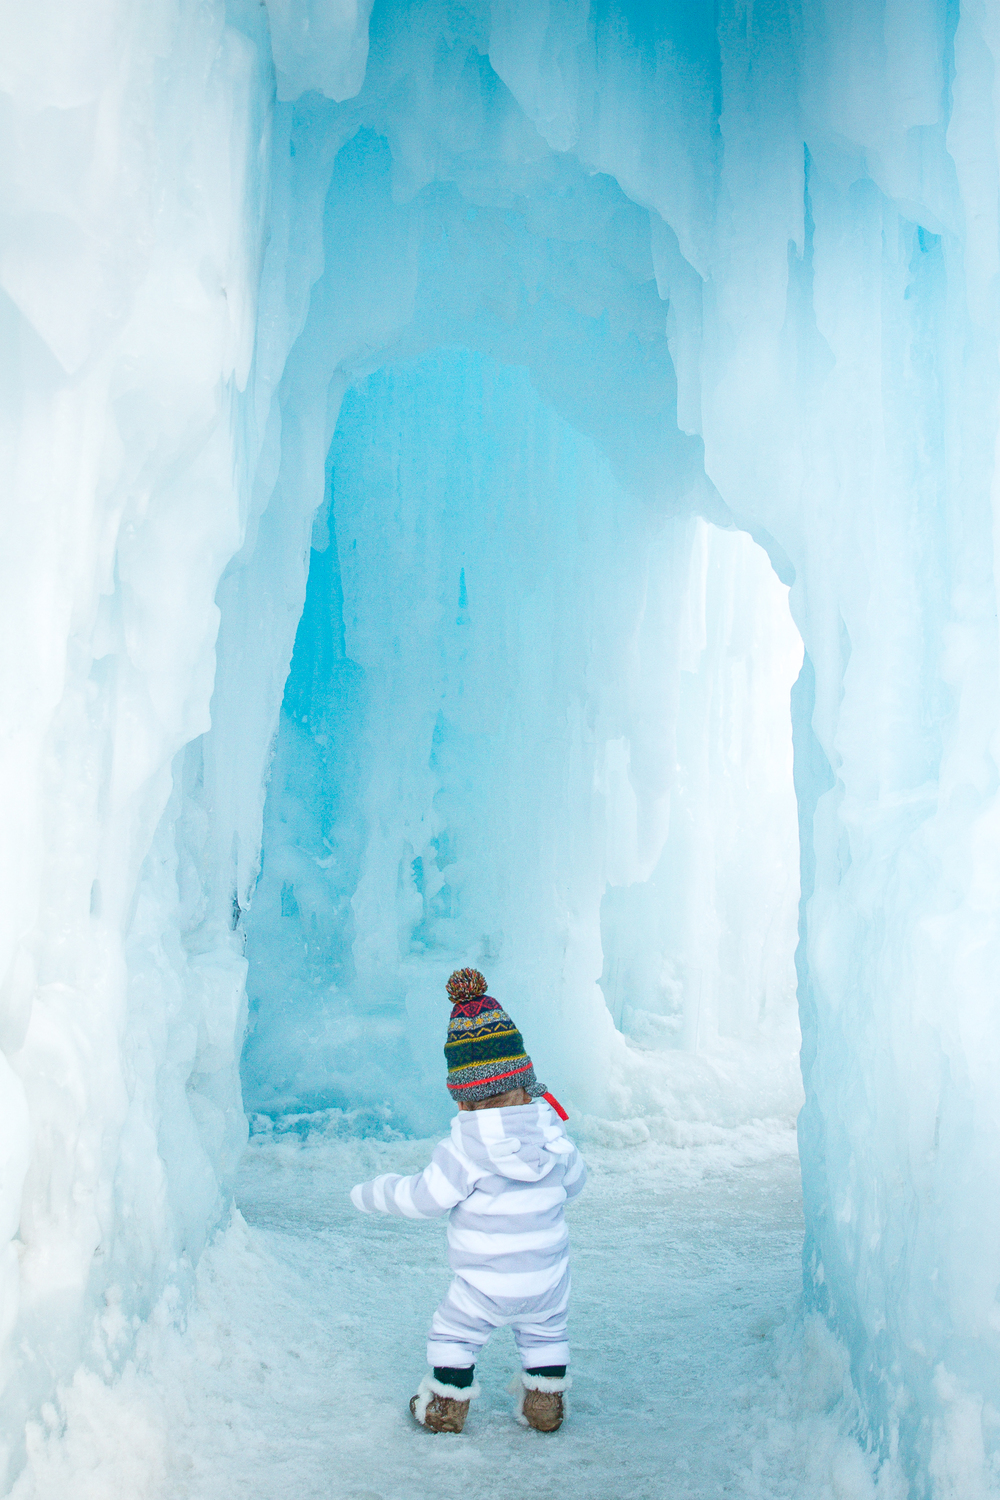 E&T-IceCastle-Feb14-2016-WEB-155.jpg